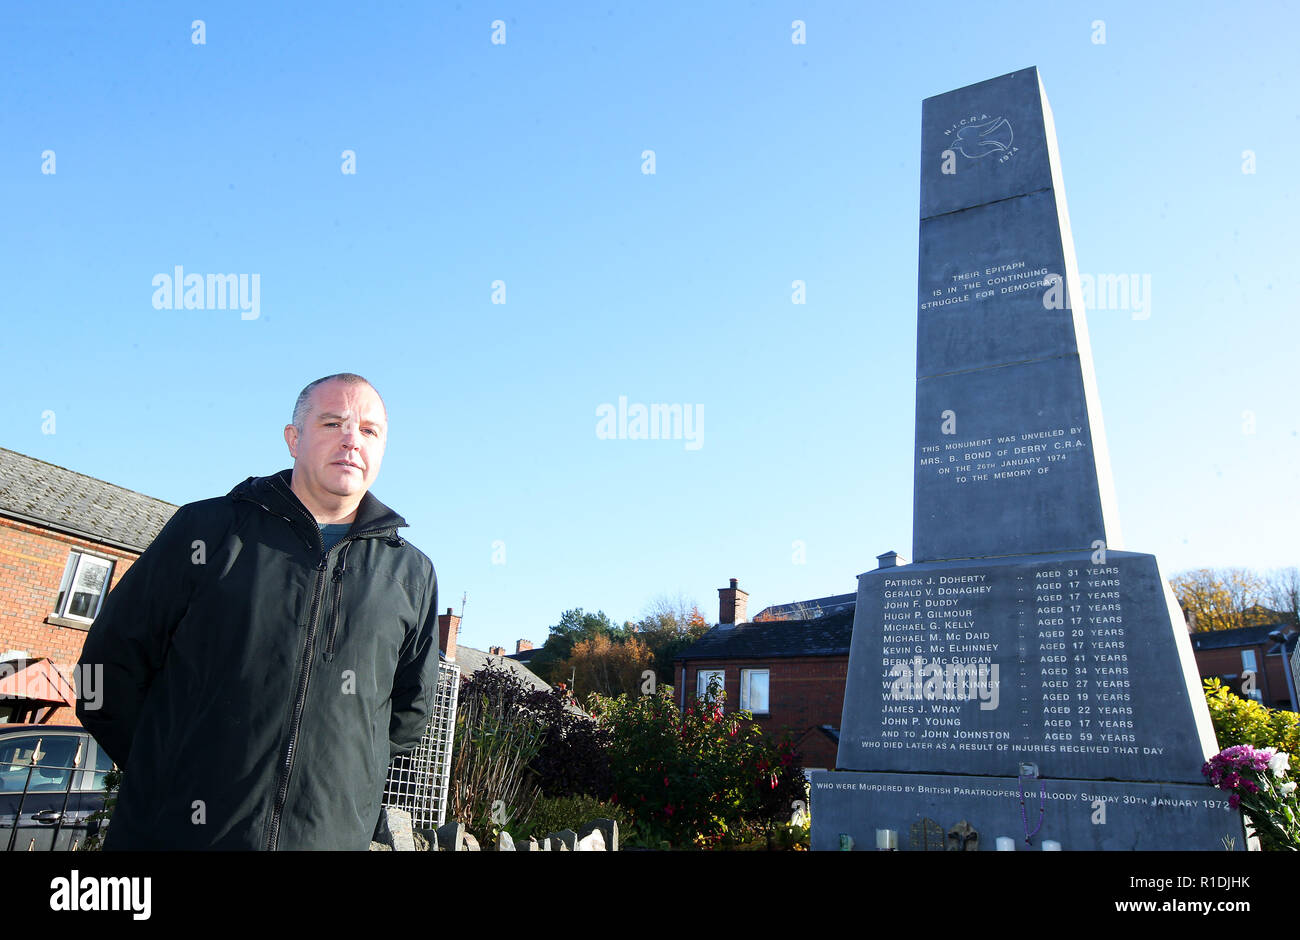 Londonderry, UK. 08th Nov, 2018. Gleann Doherty stands next to a memorial commemorating the victims of Bloody Sunday in 1972, when British soldiers shot 13 demonstrators and injured 13 others. Glenn's father Patrick Doherty was one of those killed on Bloody Sunday. Some of the worst acts of violence during the riots took place in the area. Today Derry is a tourist attraction because of the political murals. (to dpa 'The Great Fear of Brexite in Northern Ireland' of 12.11.2018) Credit: Jonathan Porter/PressEye/dpa/Alamy Live News - Stock Image